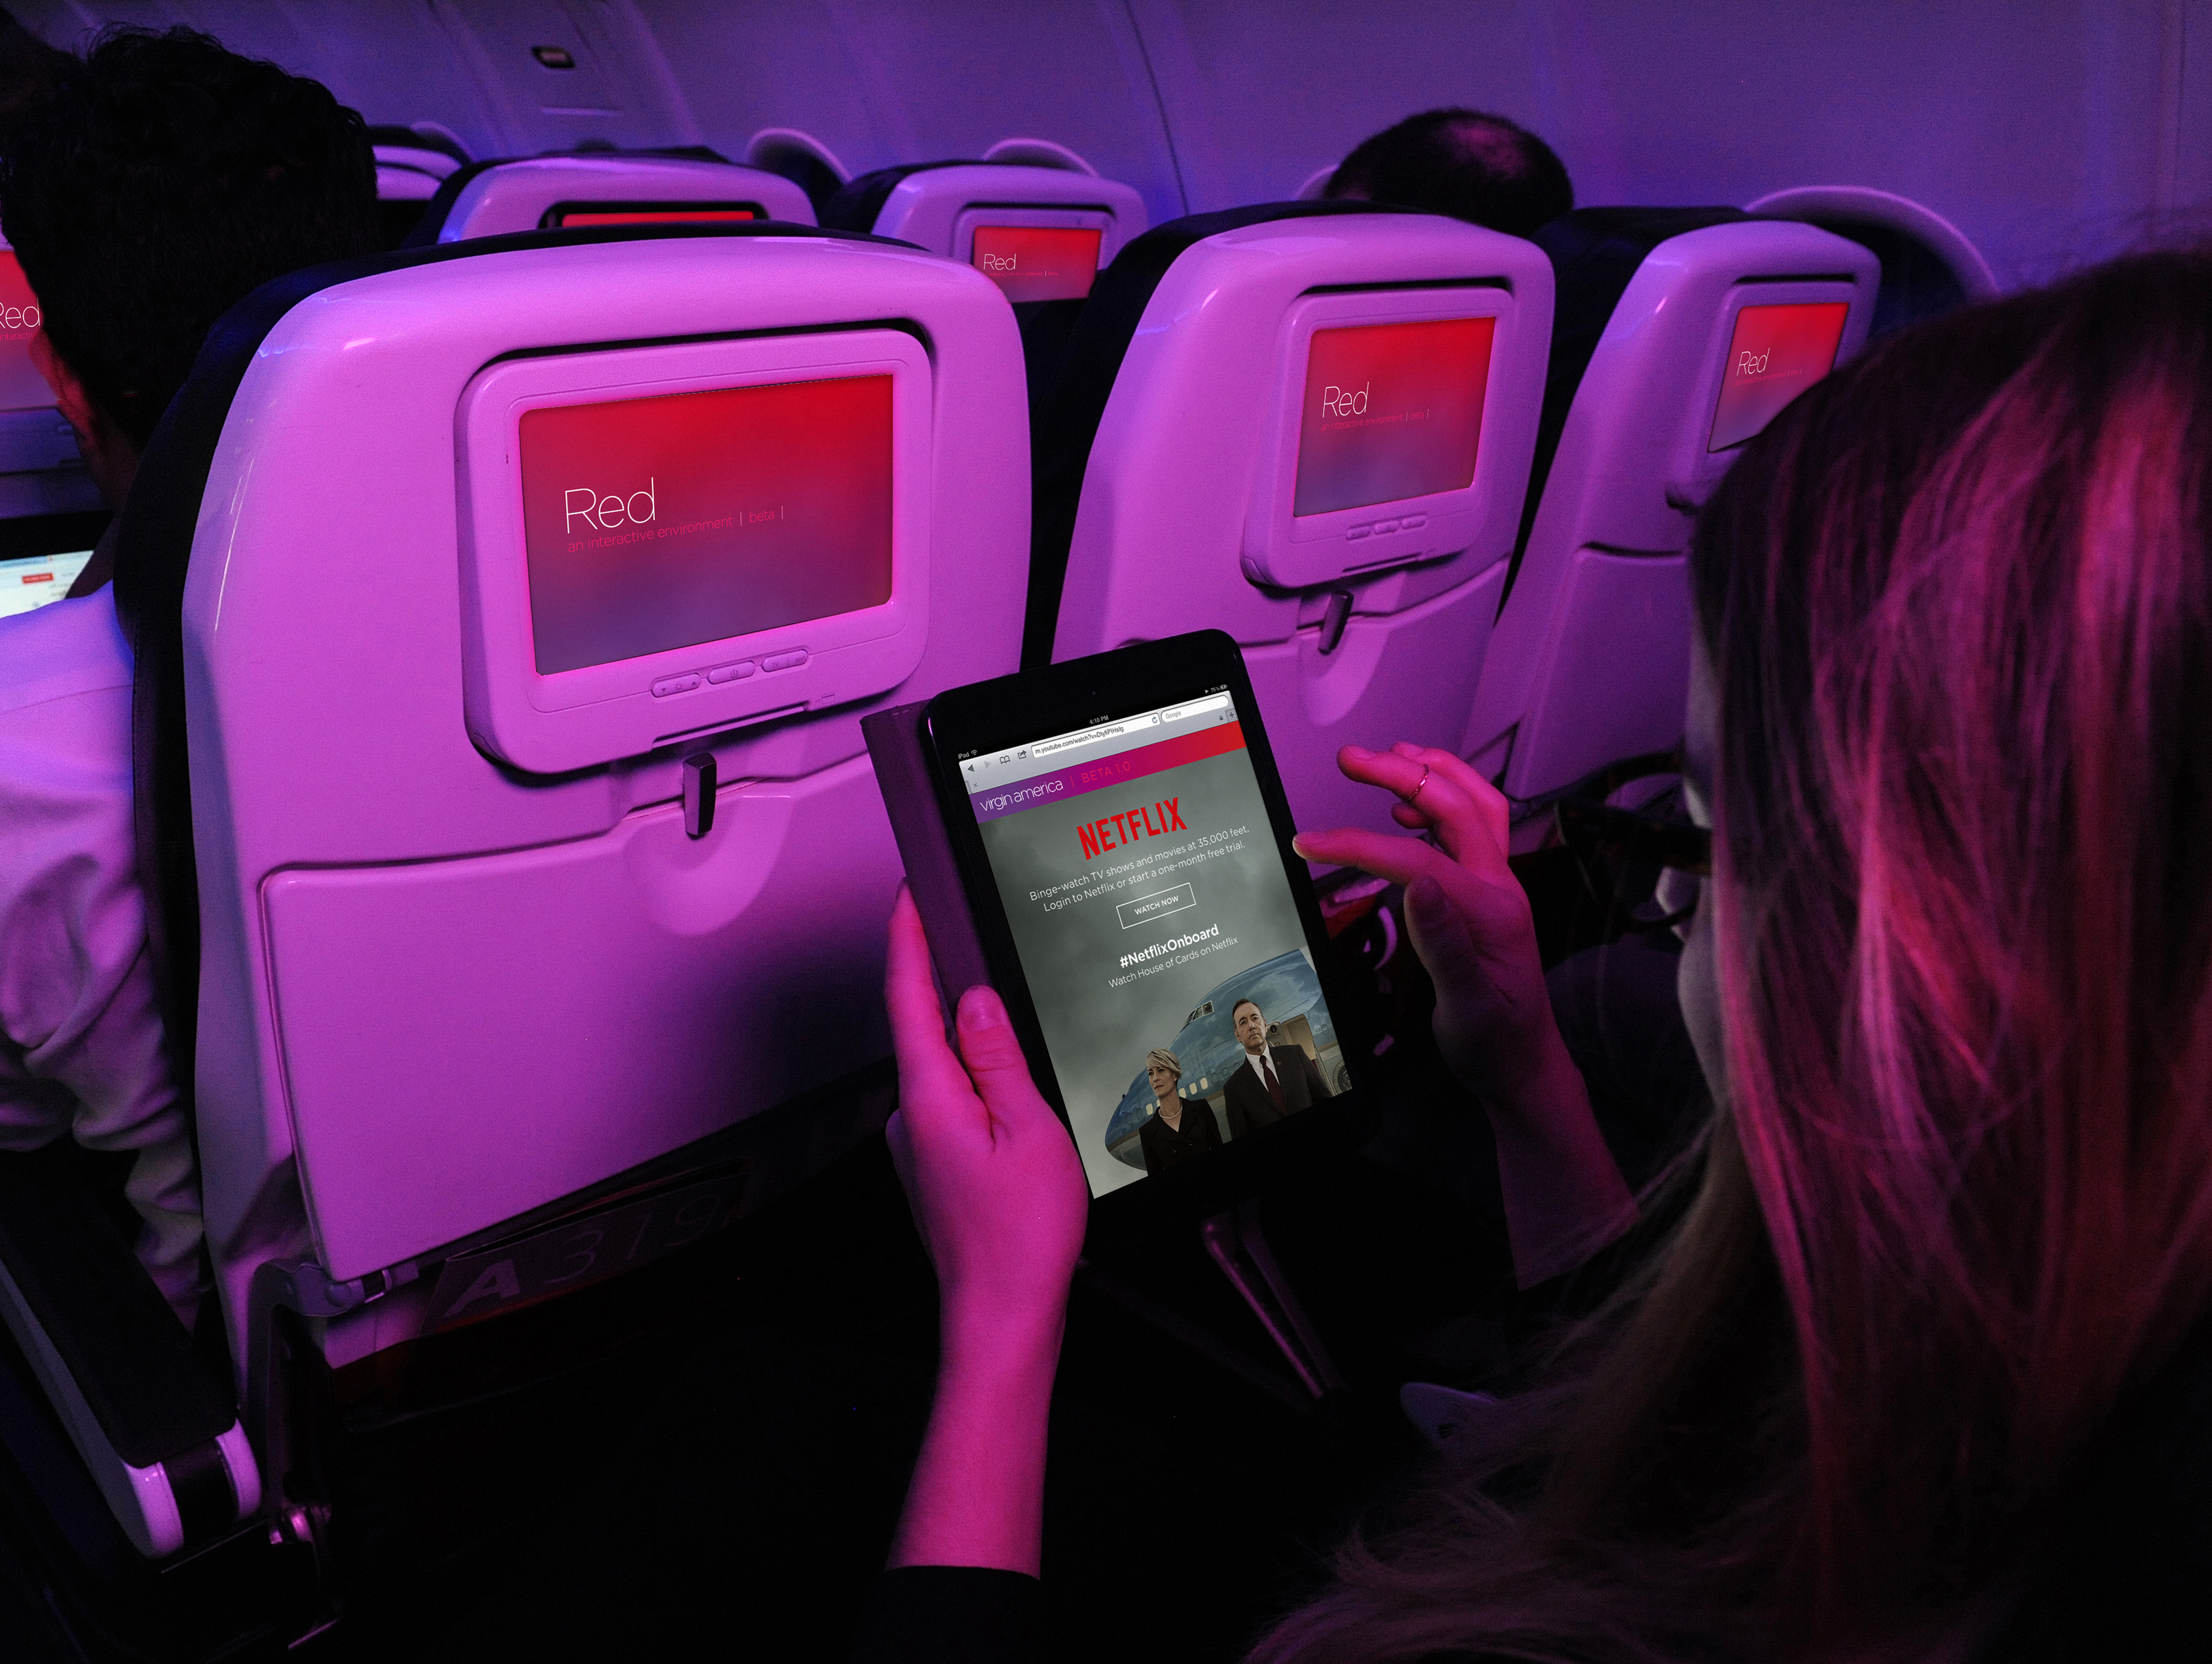 Netflix looks to grow in-flight streaming through better